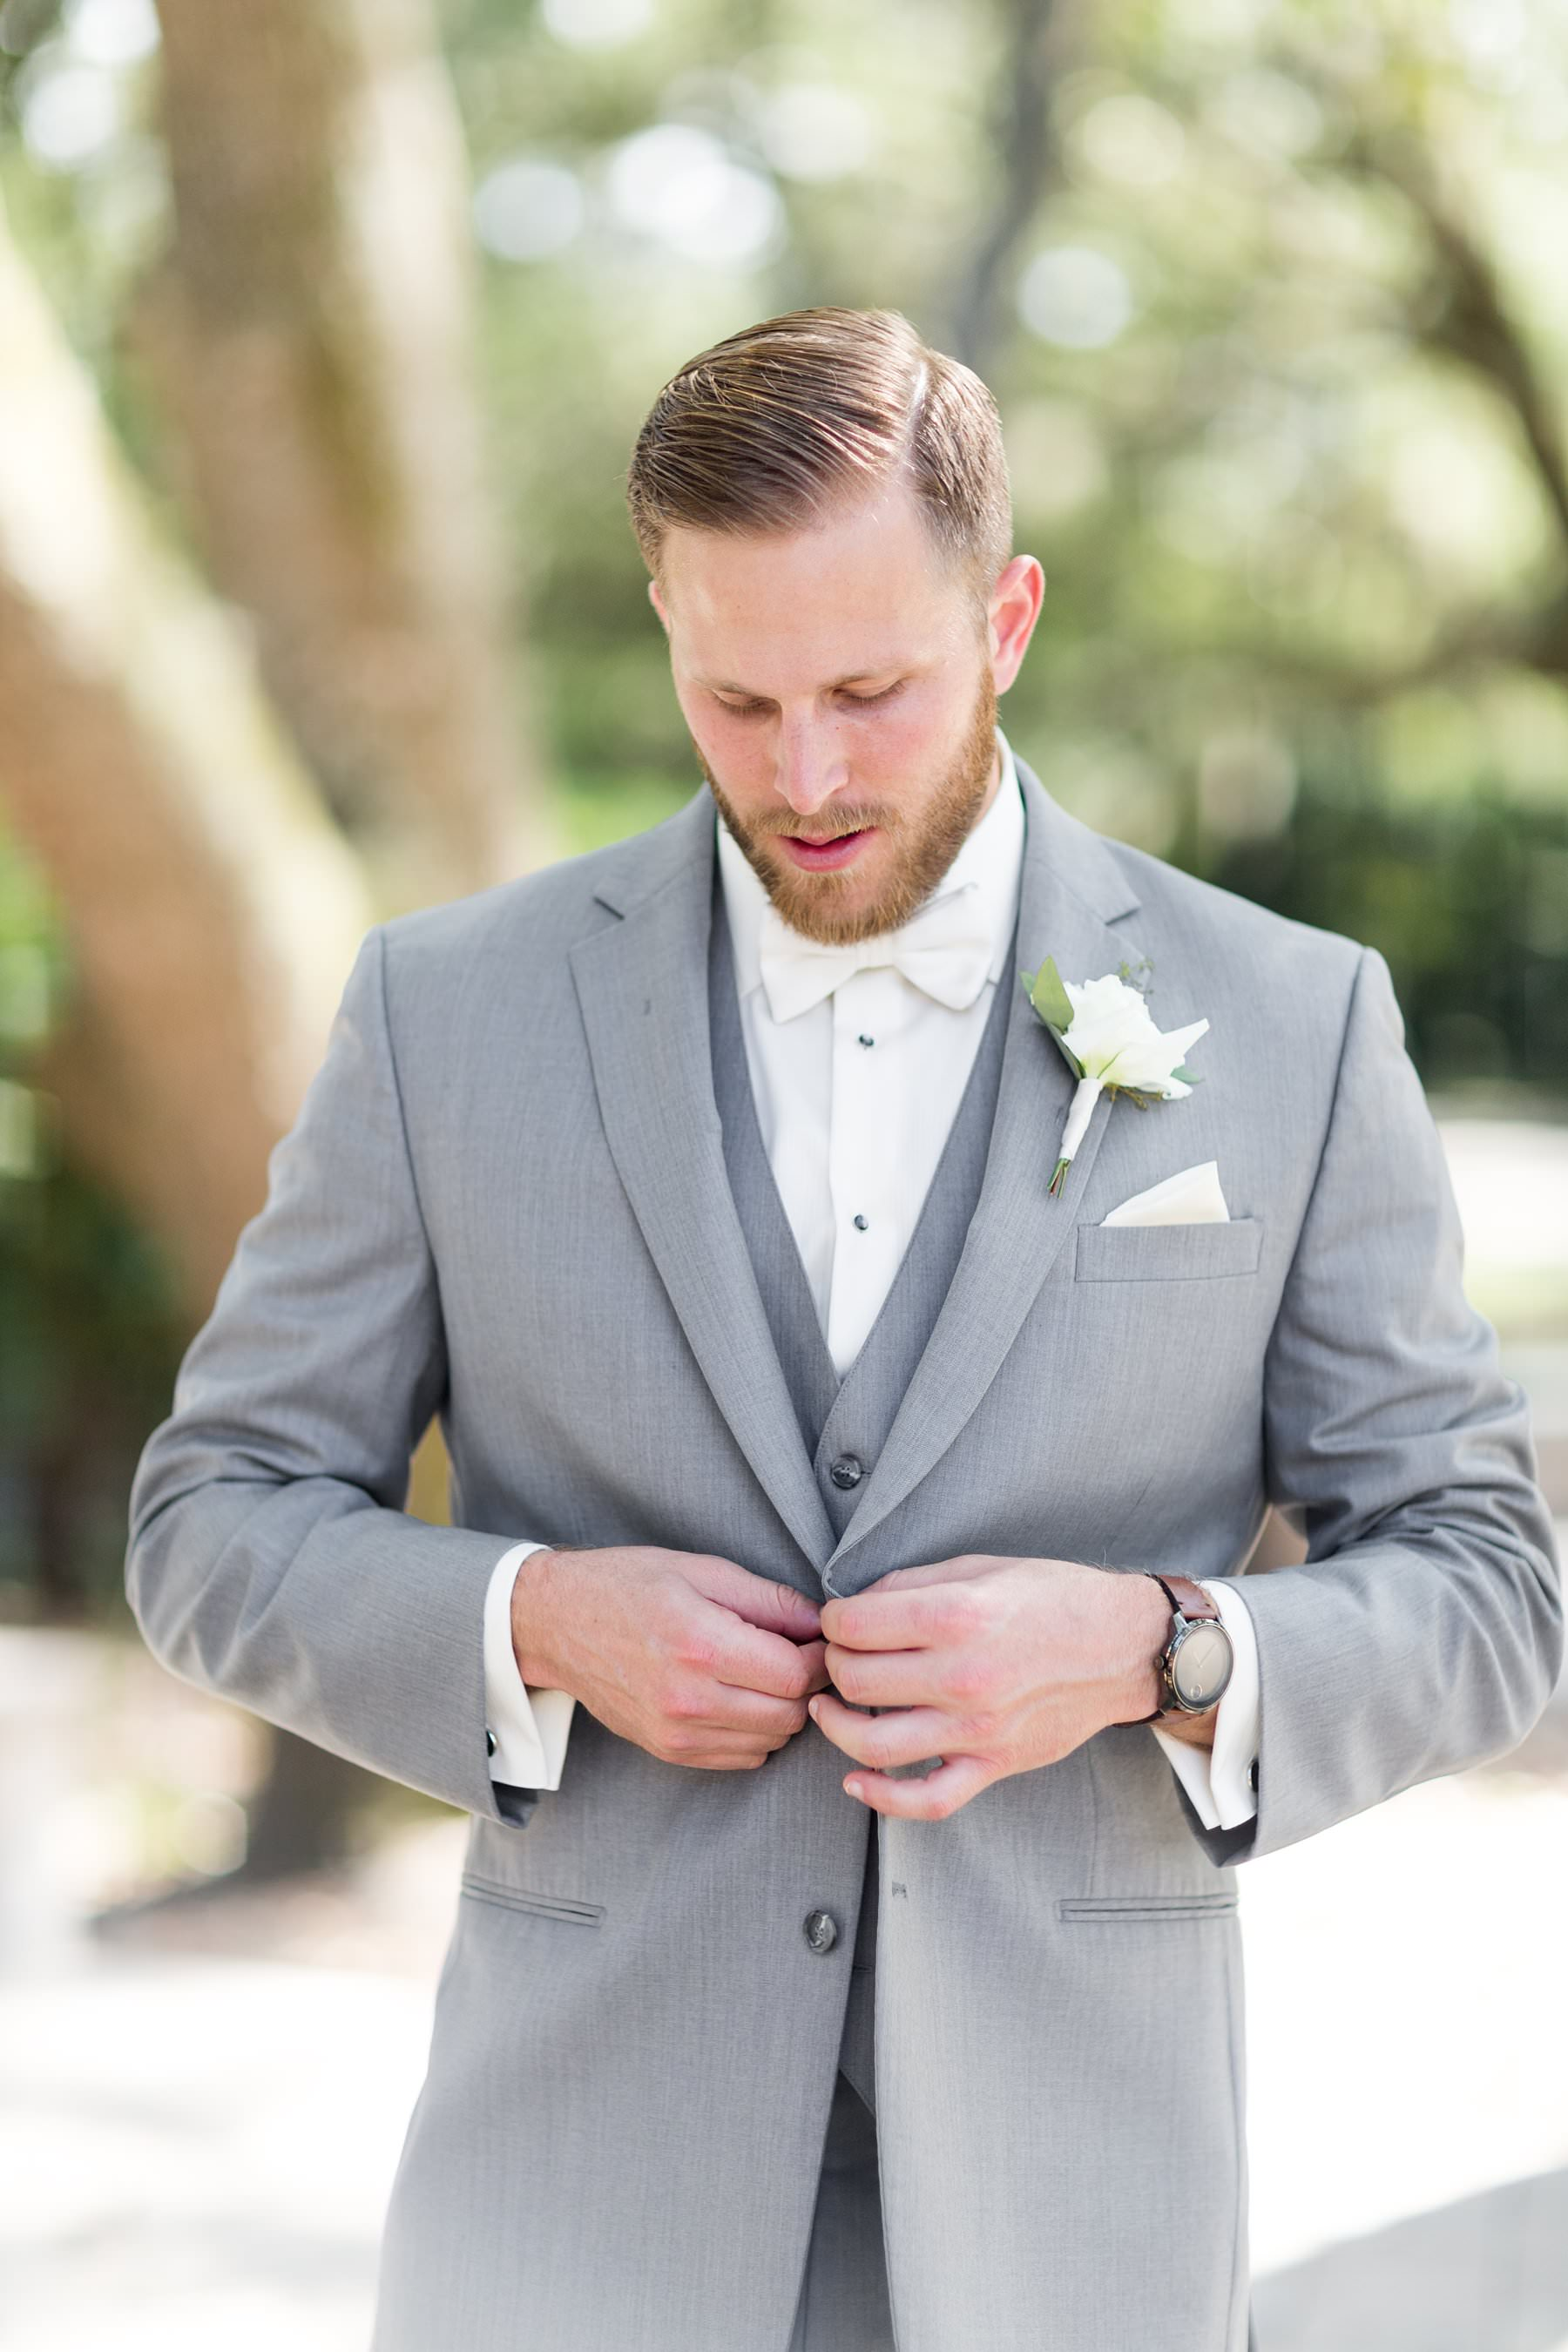 Bowing Oaks Plantation Wedding - Bri Cibene PhotographyBri ...